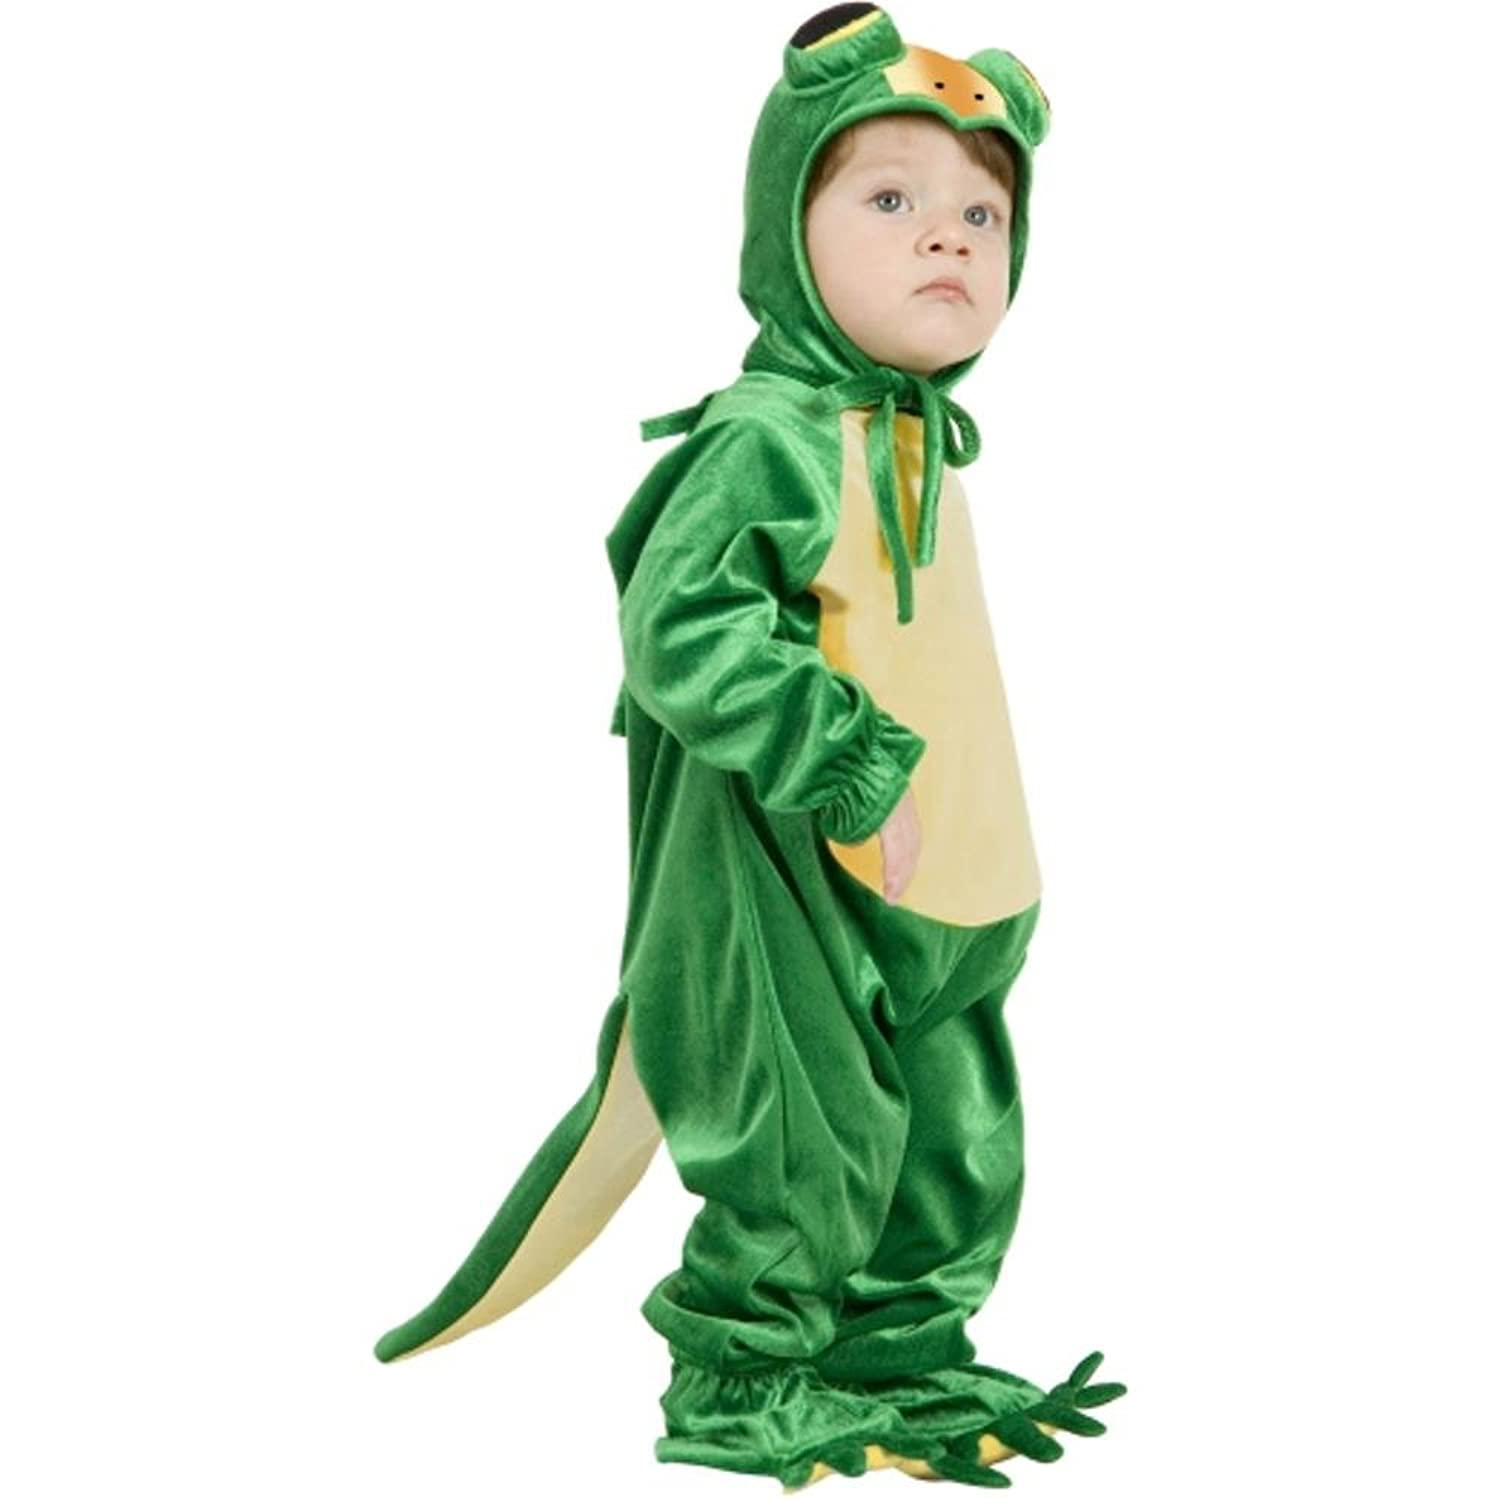 amazoncom toddler little gecko costume size toddler 2t 4t clothing - Halloween Costumes 4t